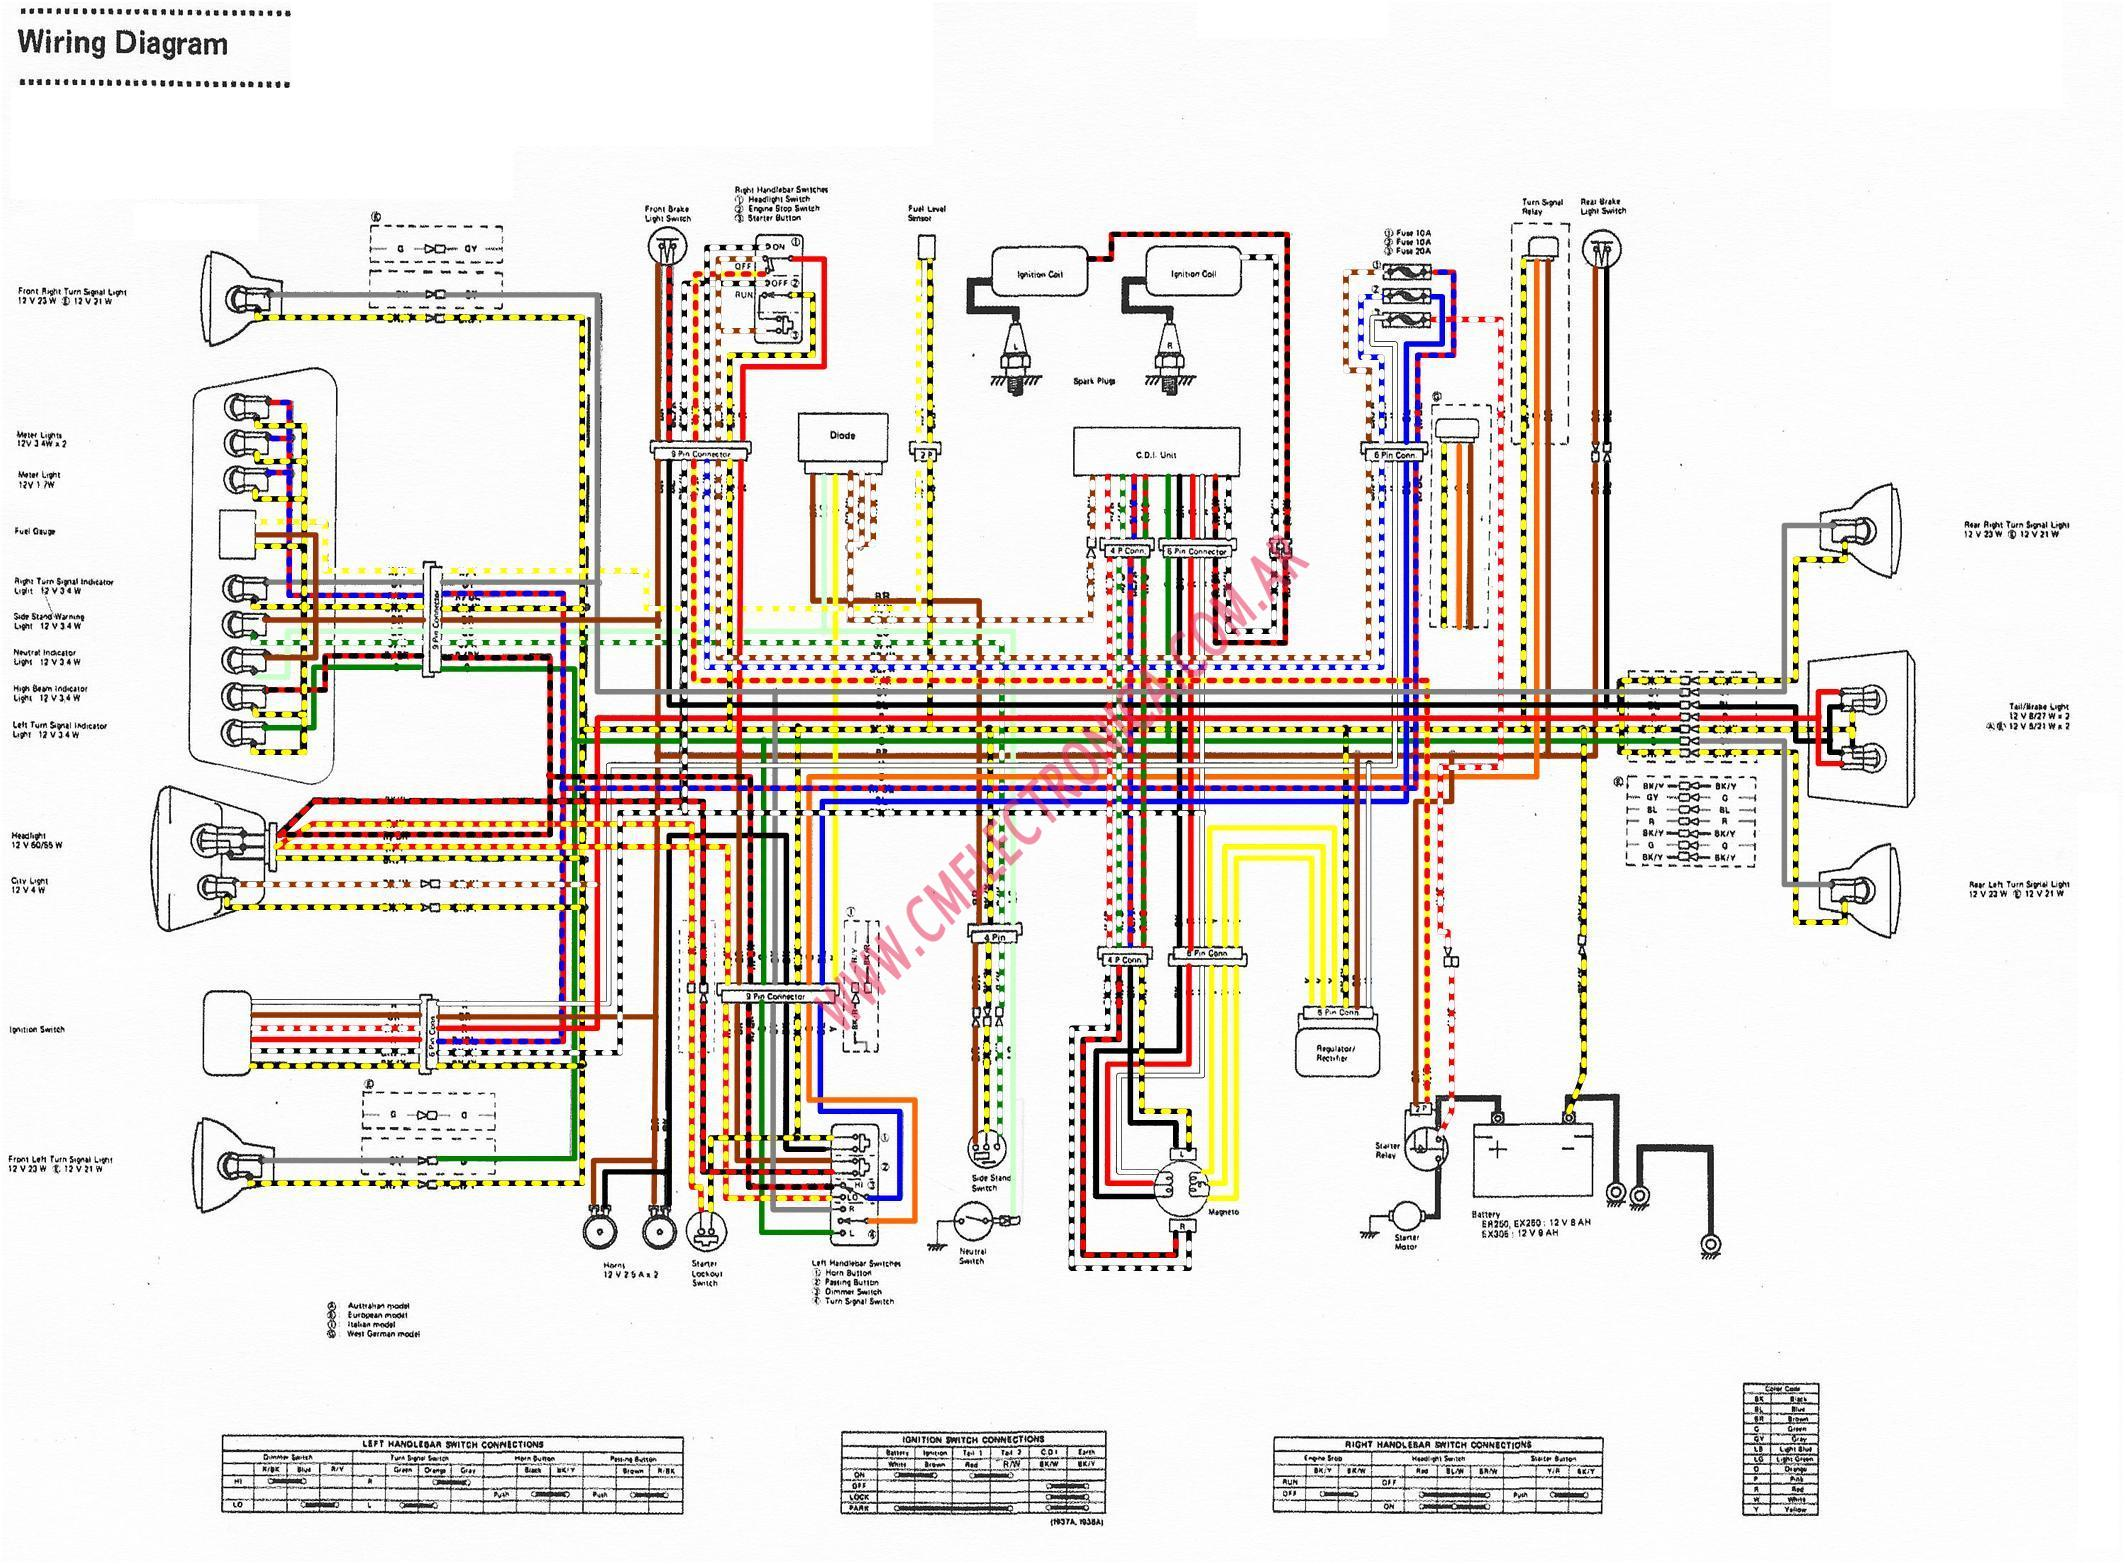 Wiring Diagram Kawasaki Ninja 150 Rr : Kawasaki ninja ignition wiring diagram ktm